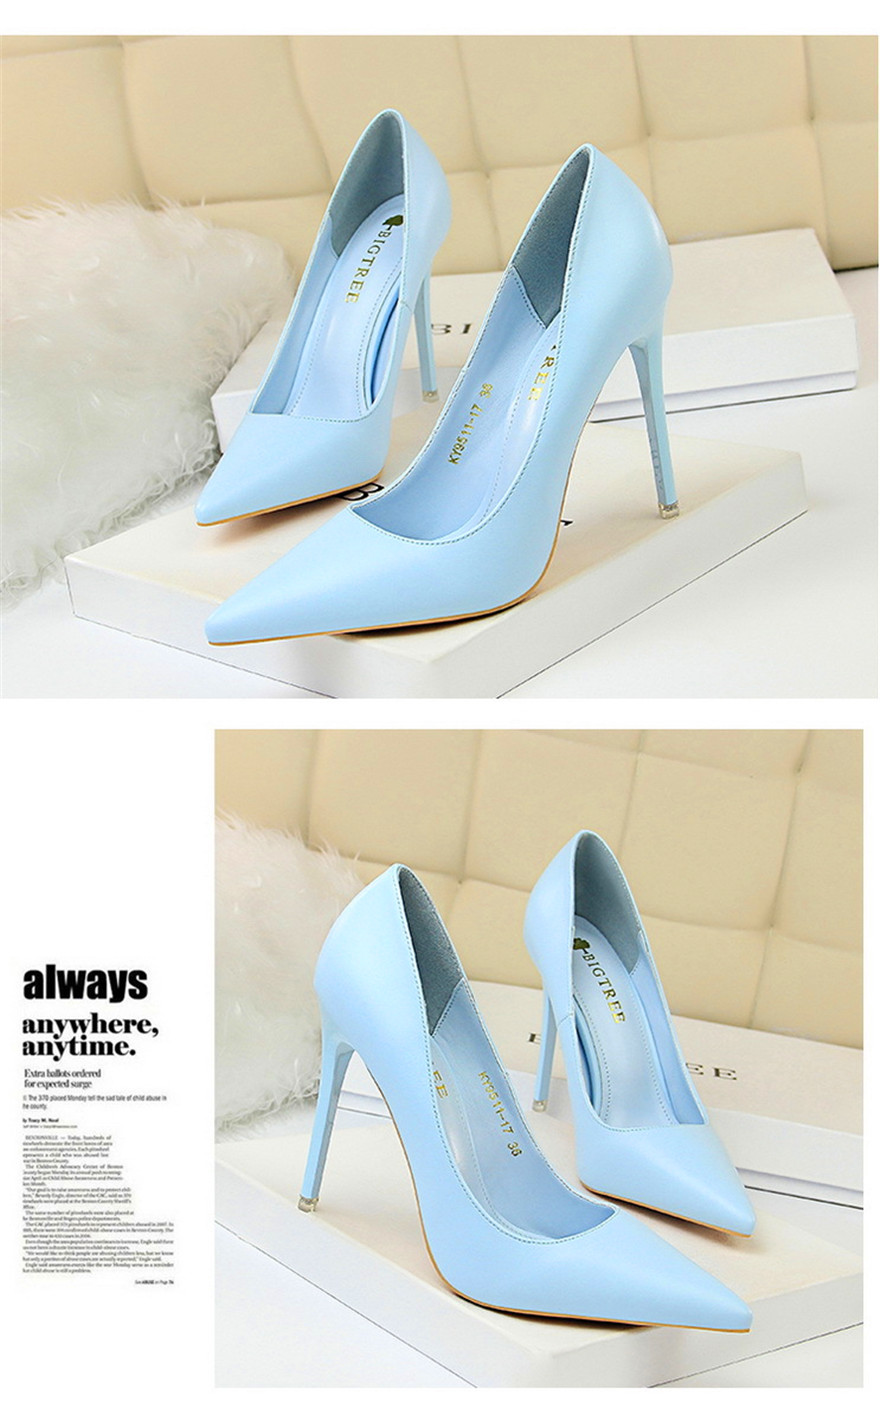 BIGTREE Soft Leather Shallow Fashion Women's High Heels Shoes Candy Colors Pointed Toe Women Pumps Show Thin Female Office Shoe 15